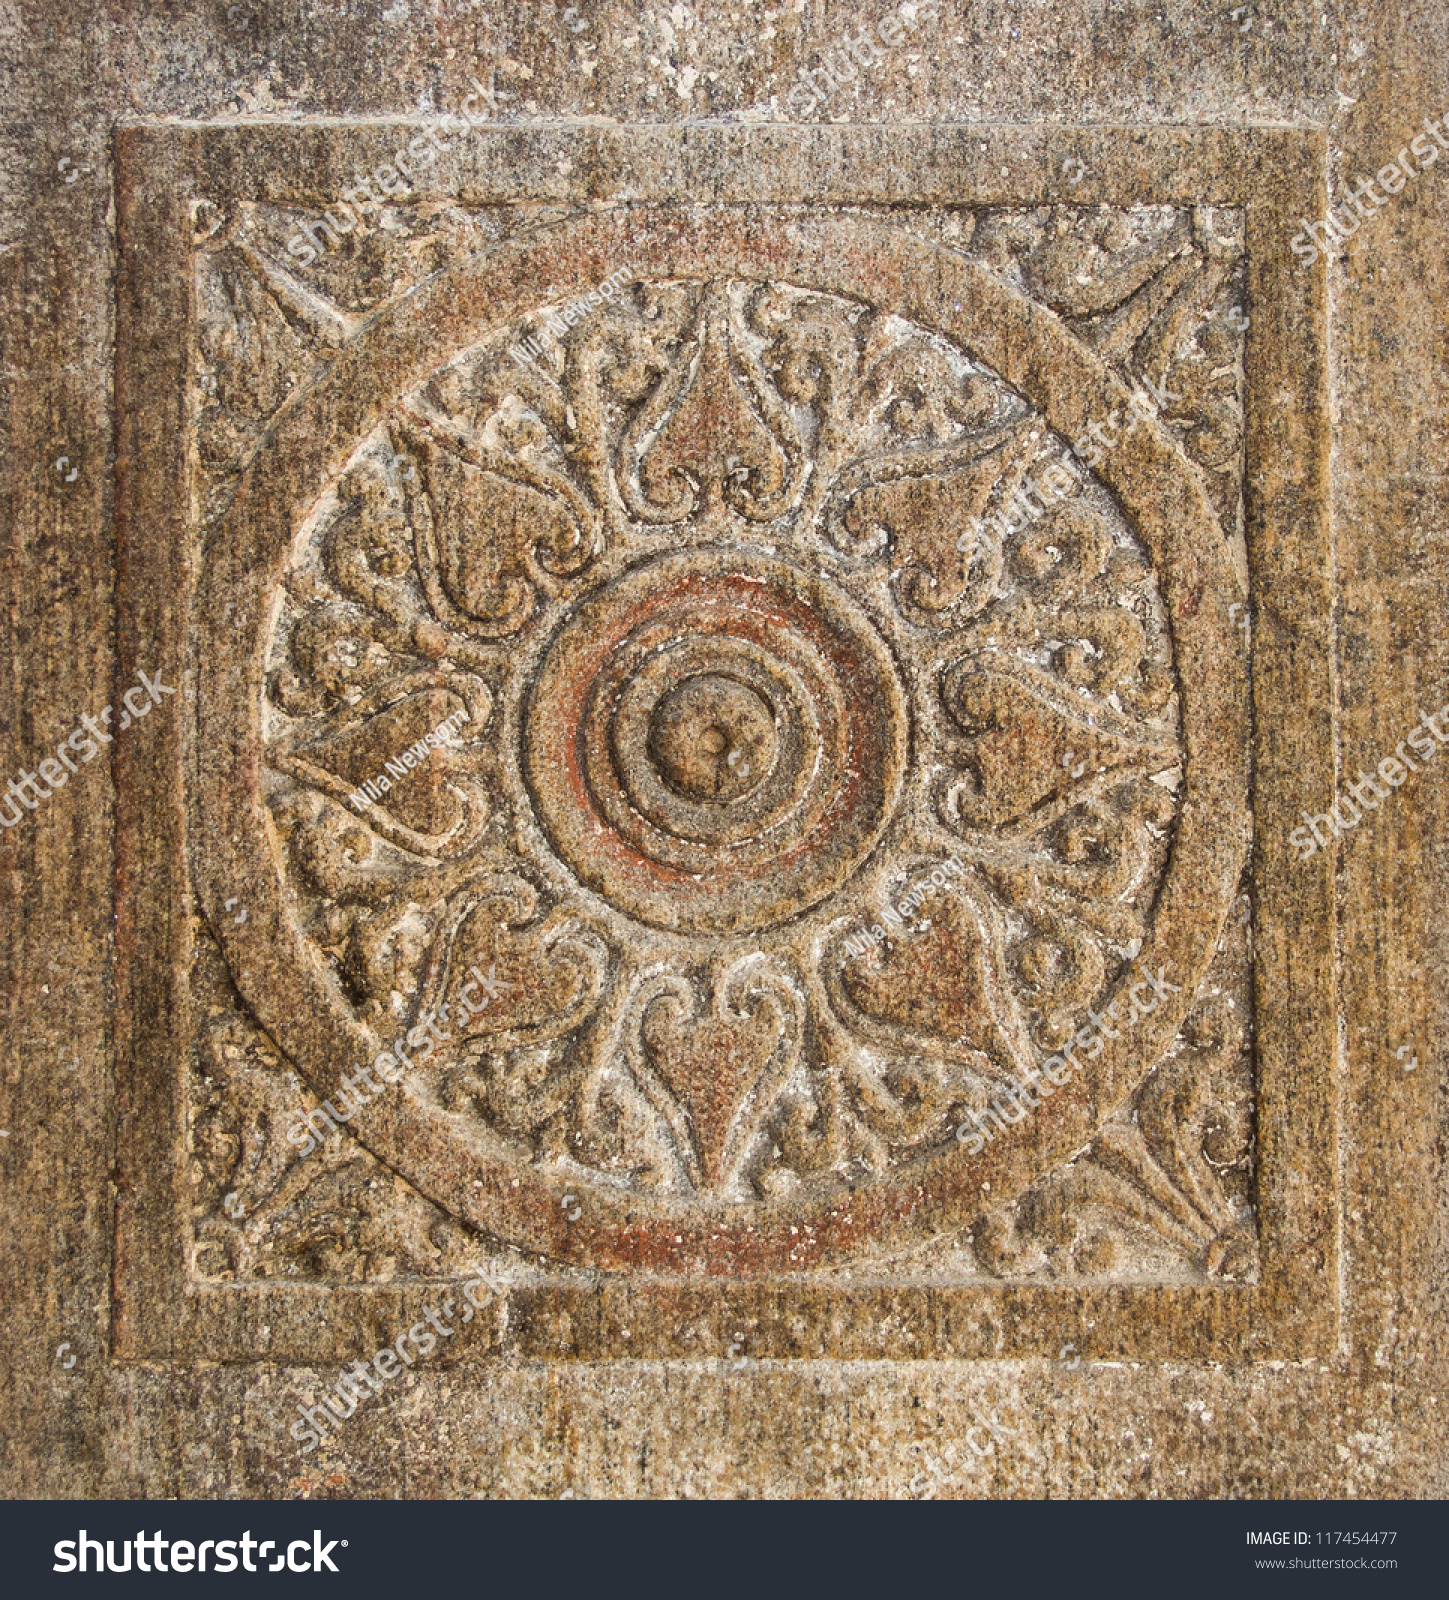 Chakra carved into ancient stone wall stock photo